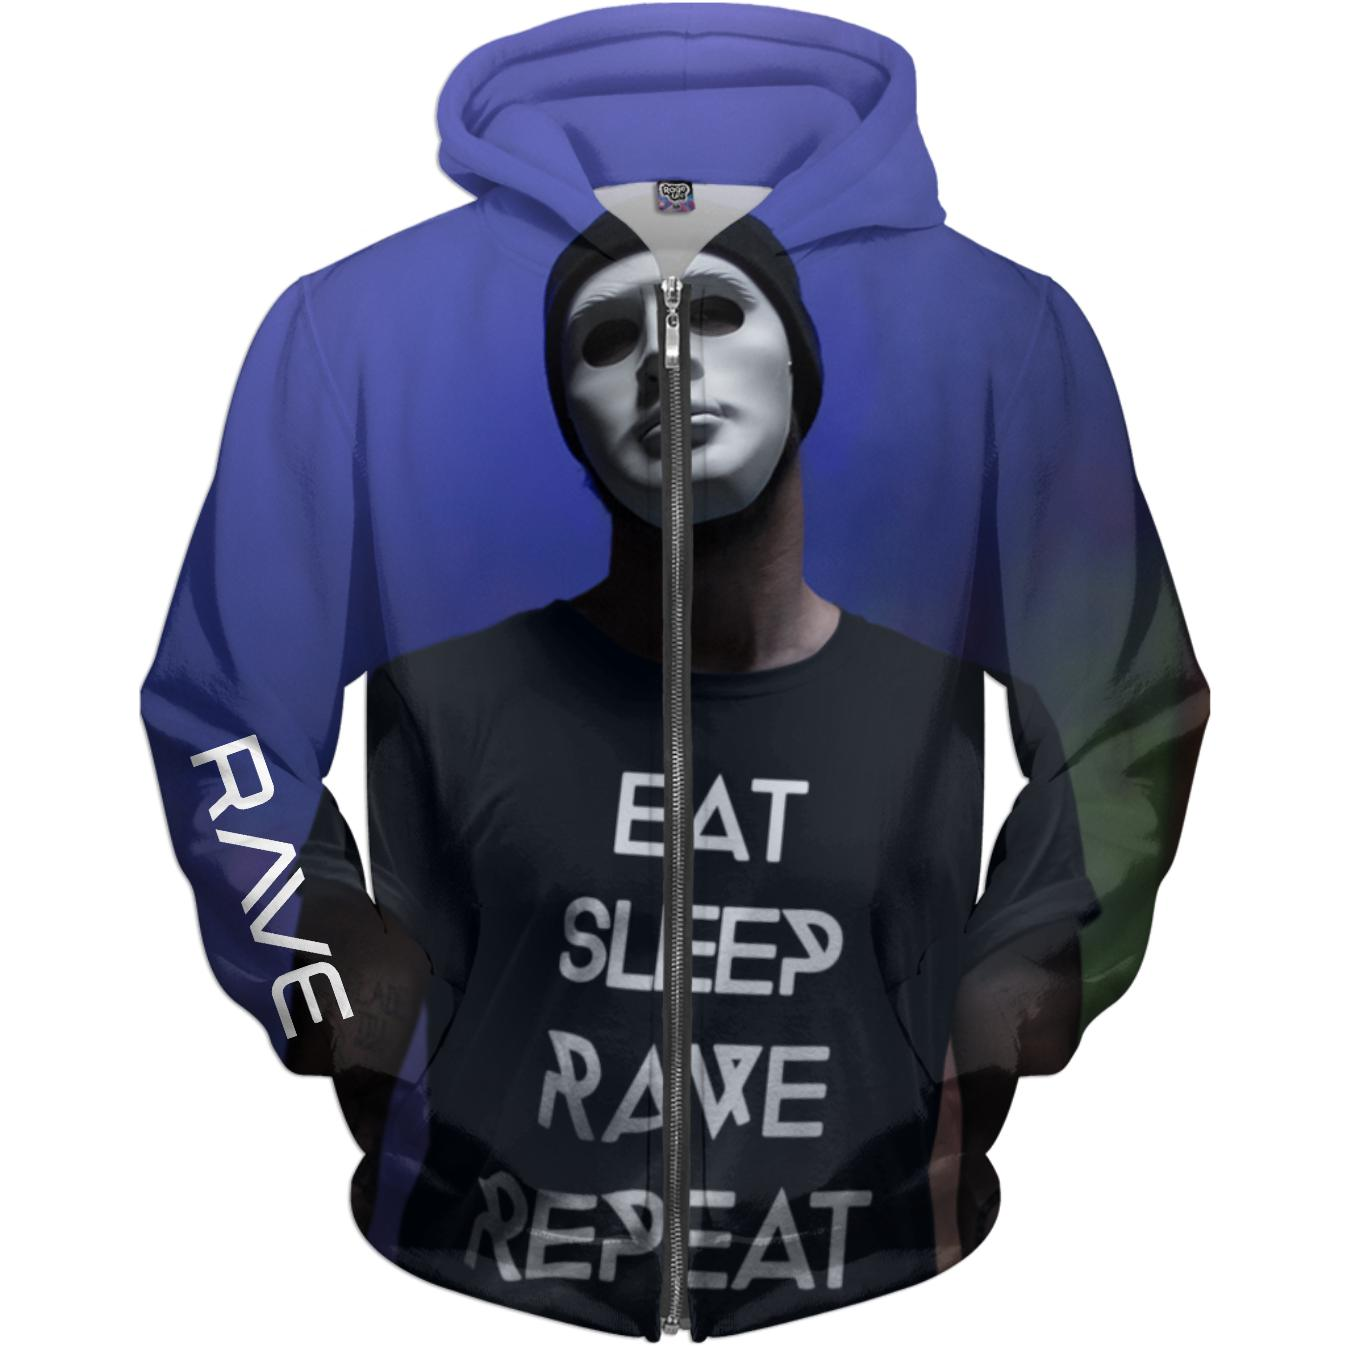 RAVE REPEAT Yoda - Rave On!® All-Over-360Print Hoodies X-Small - Rave On!® der Club & Techno Szene Shop für Coole Junge Mode Streetwear Style & Fashion Outfits + Sexy Festival 420 Stuff